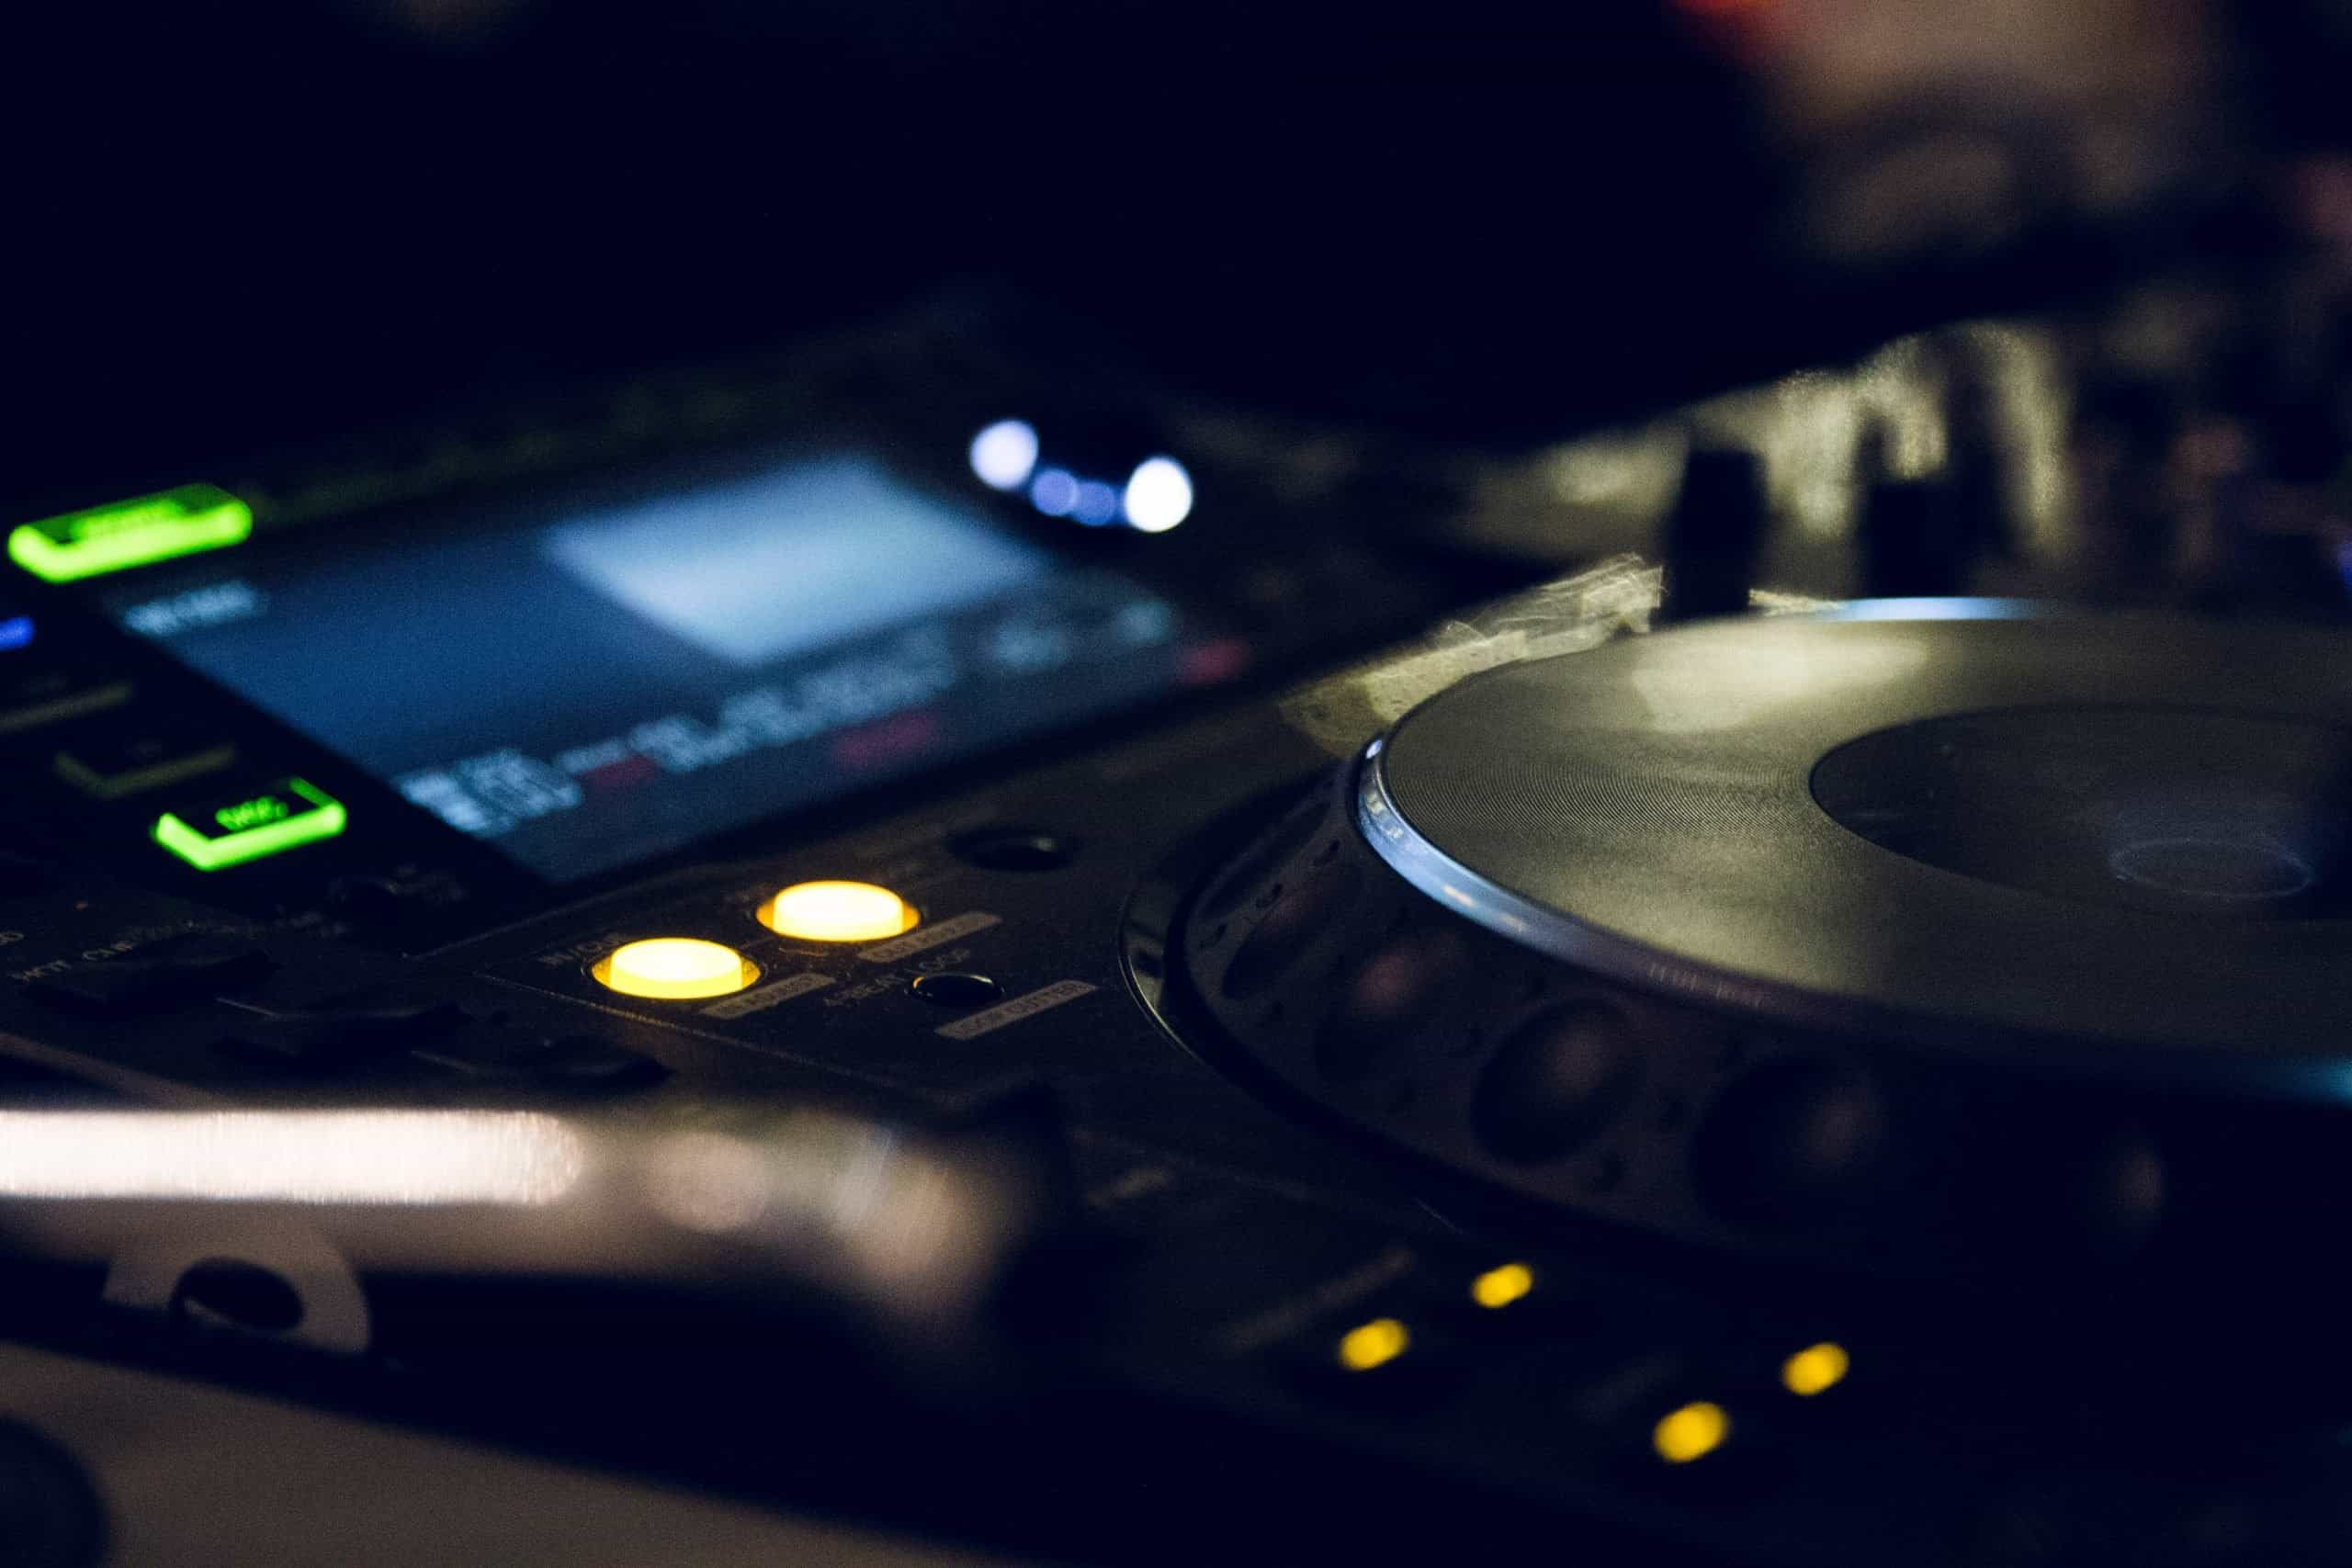 DJ turntable in close-up